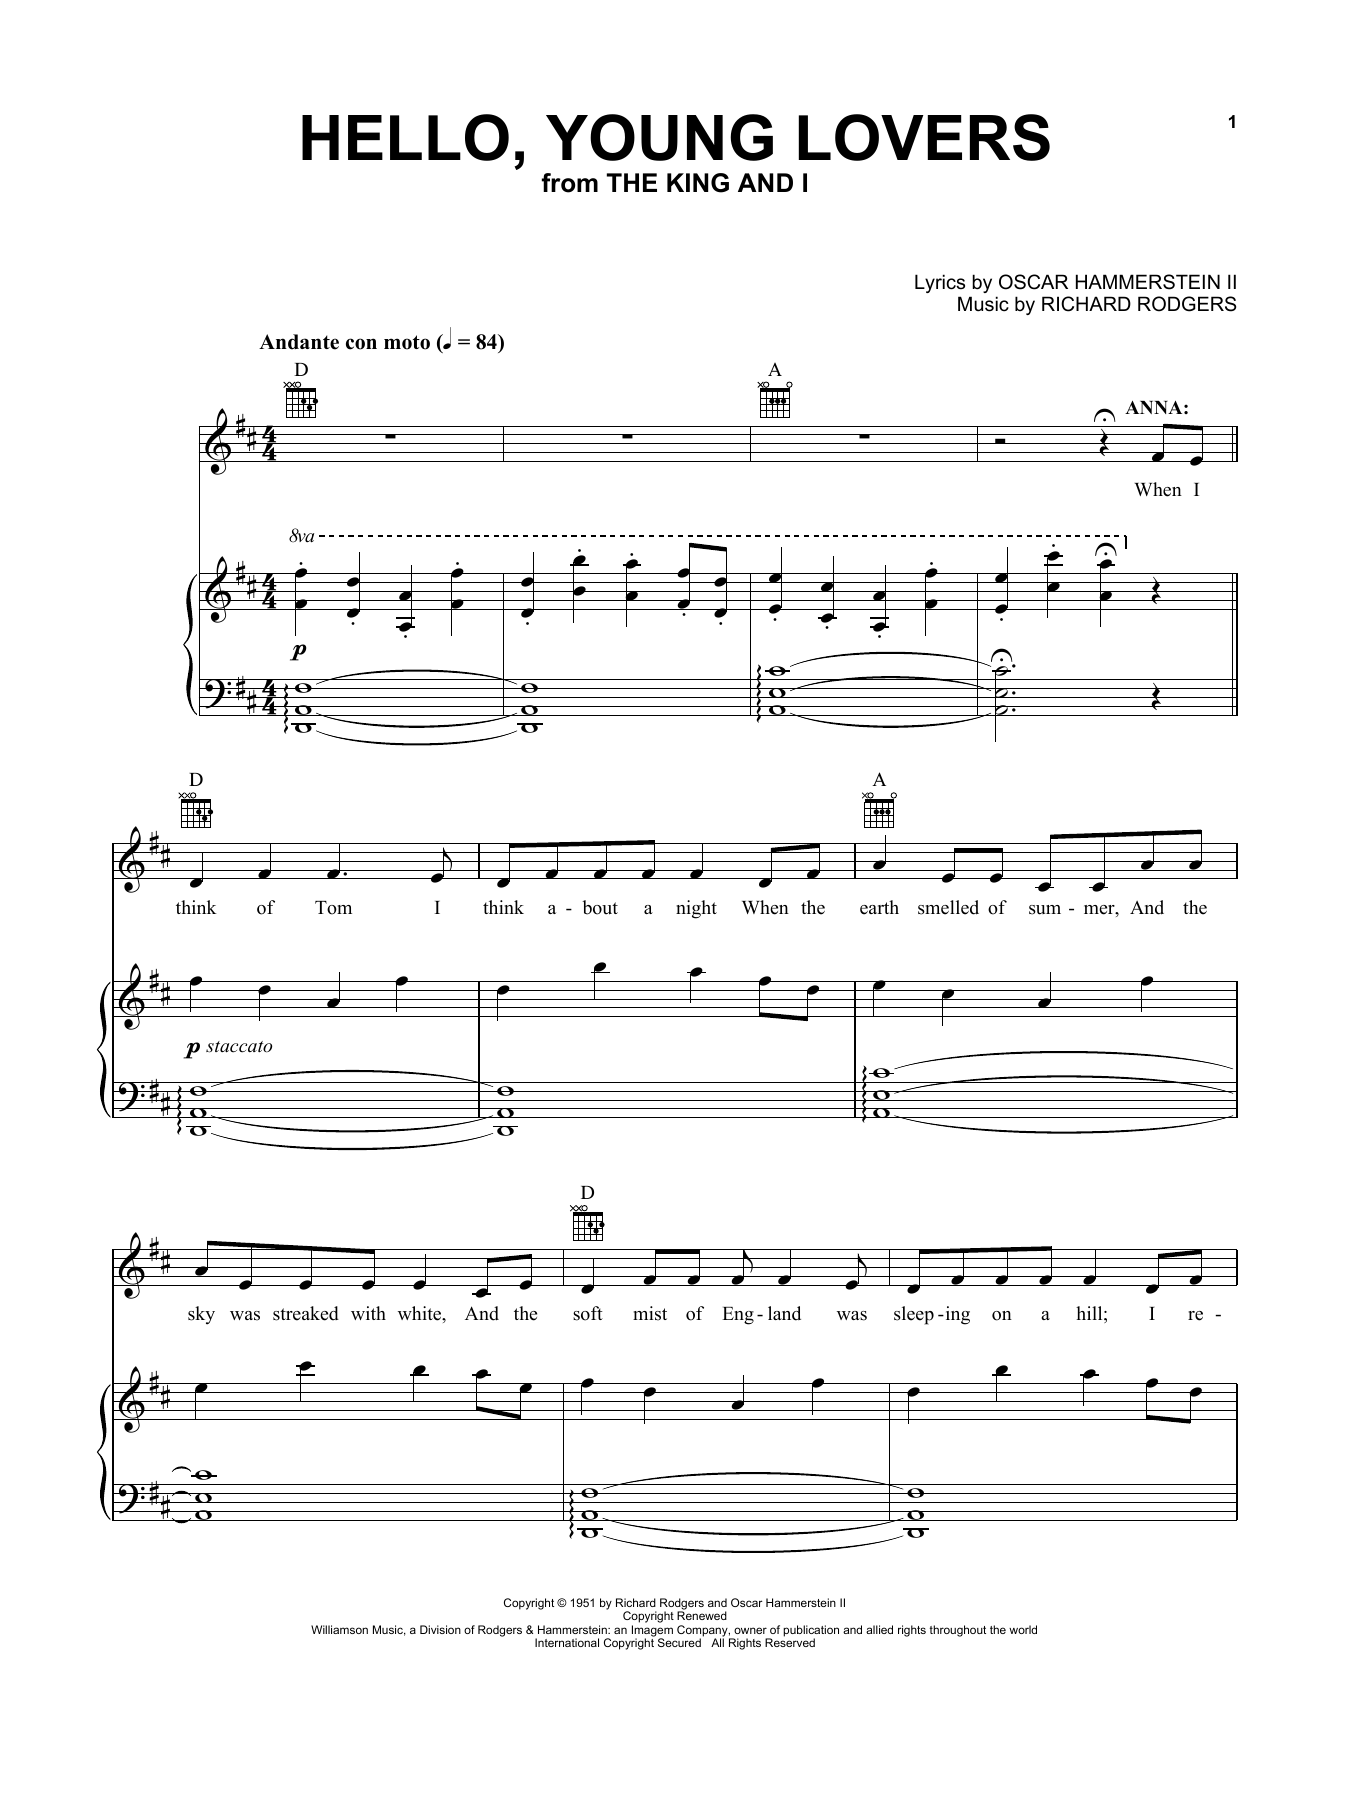 Rogers & Hammerstein Hello, Young Lovers sheet music notes and chords. Download Printable PDF.